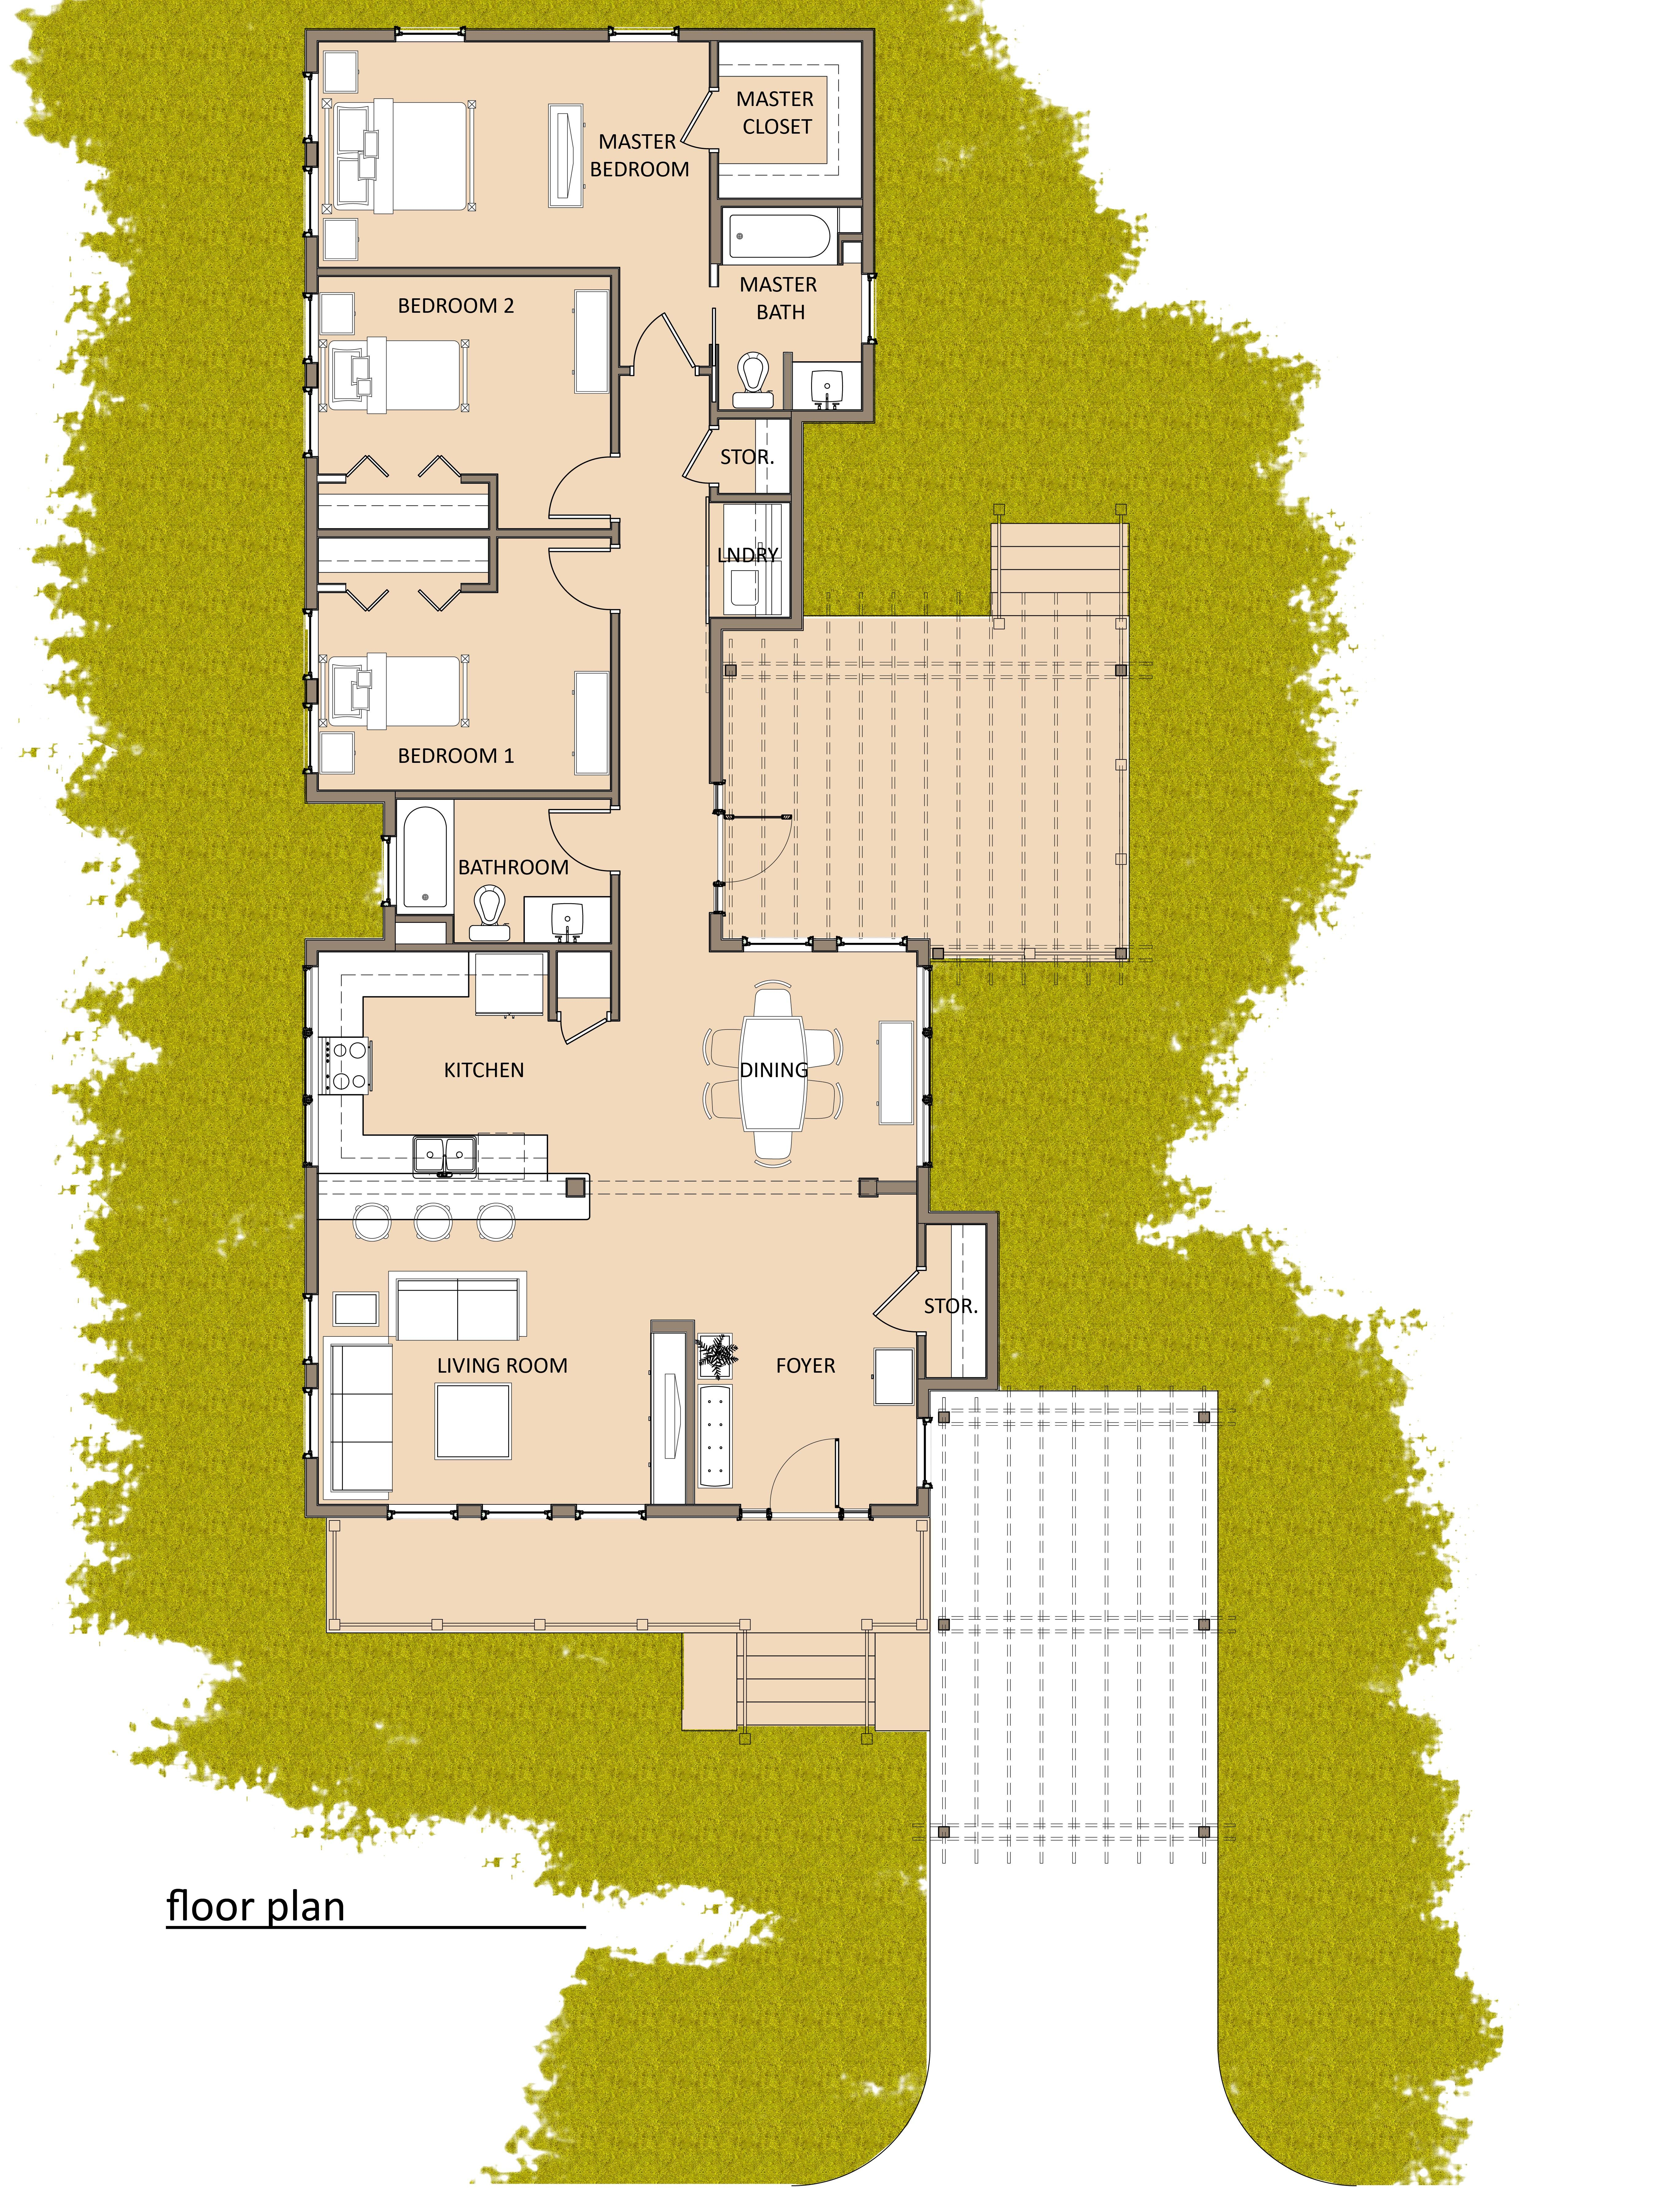 78+ images about container (shipping) homes and floor plans on